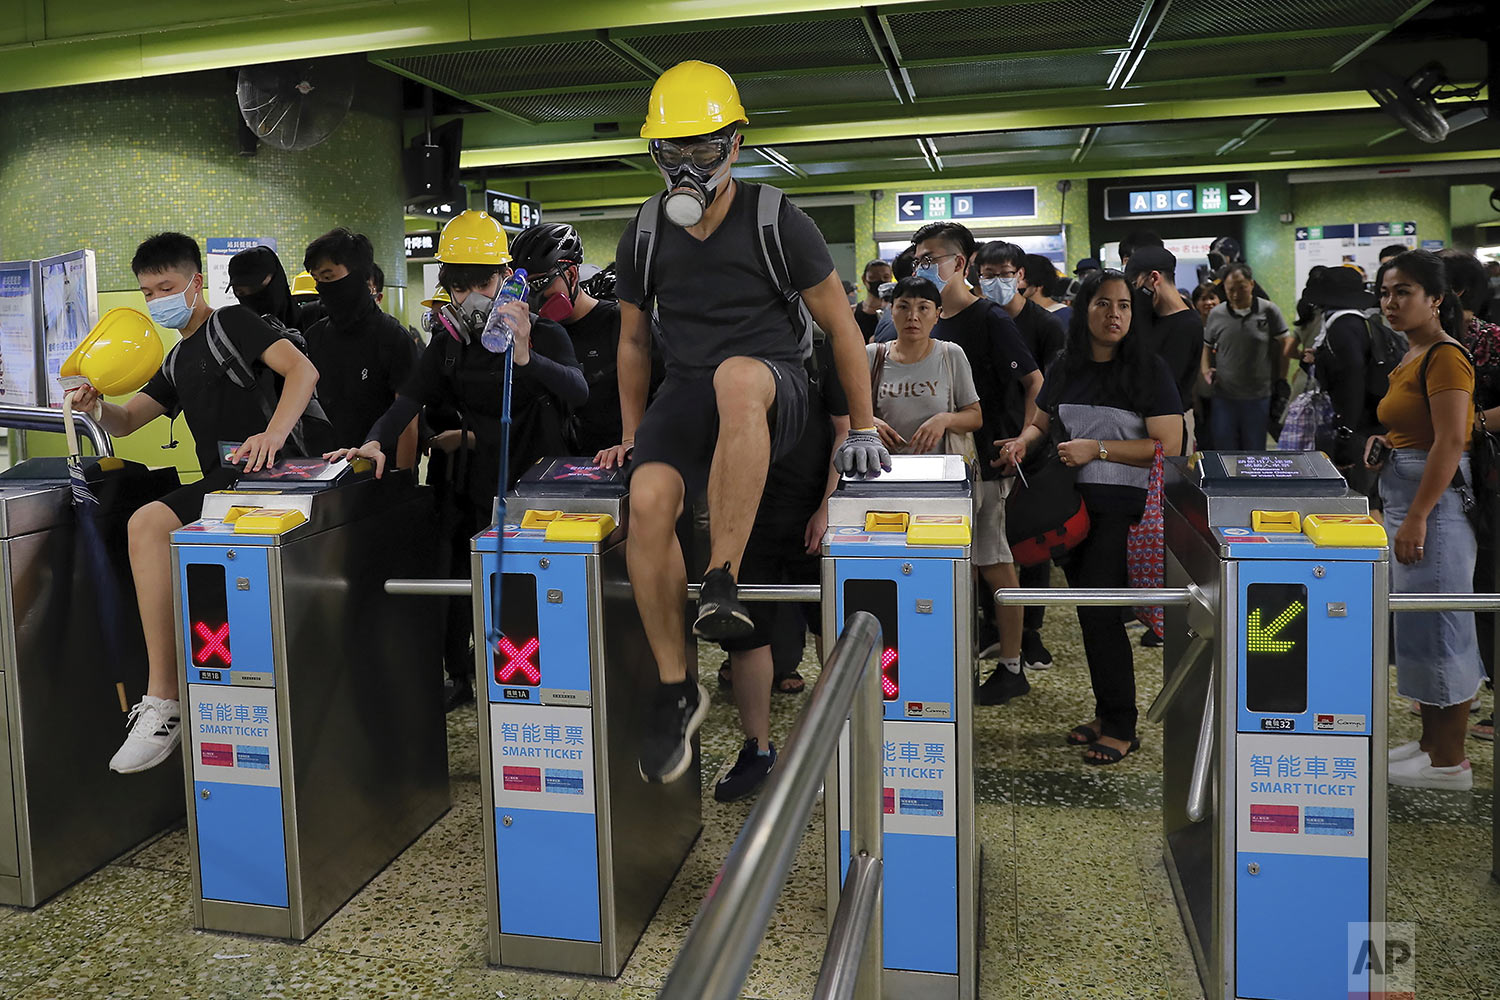 Protesters jump over MTR gates as they move to another destination during the anti-extradition bill protest in Hong Kong, Sunday, Aug. 11, 2019.  (AP Photo/Kin Cheung)